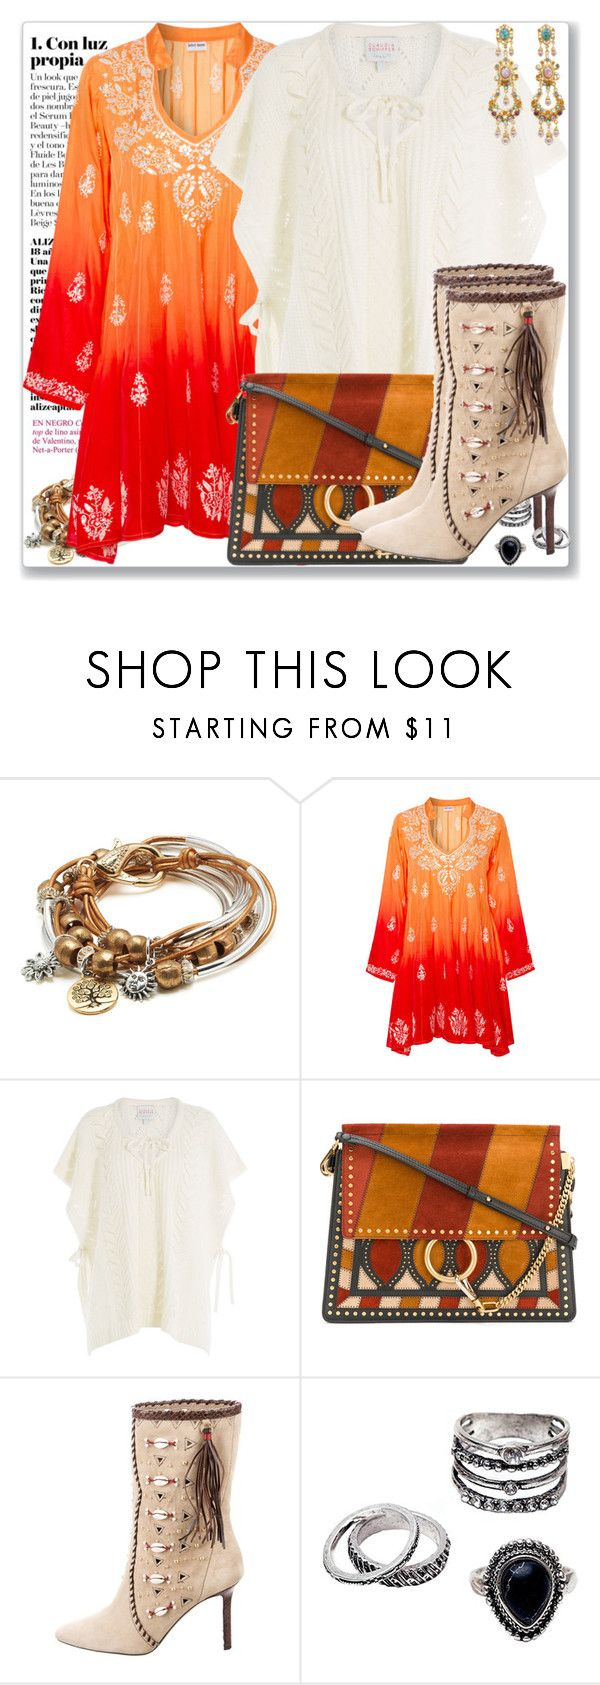 """""""Boho 11.9"""" by rosalol ❤ liked on Polyvore featuring Lizzy James, Juliet Dunn, Claudia Schiffer, Chloé, Tamara Mellon and Ben-Amun"""